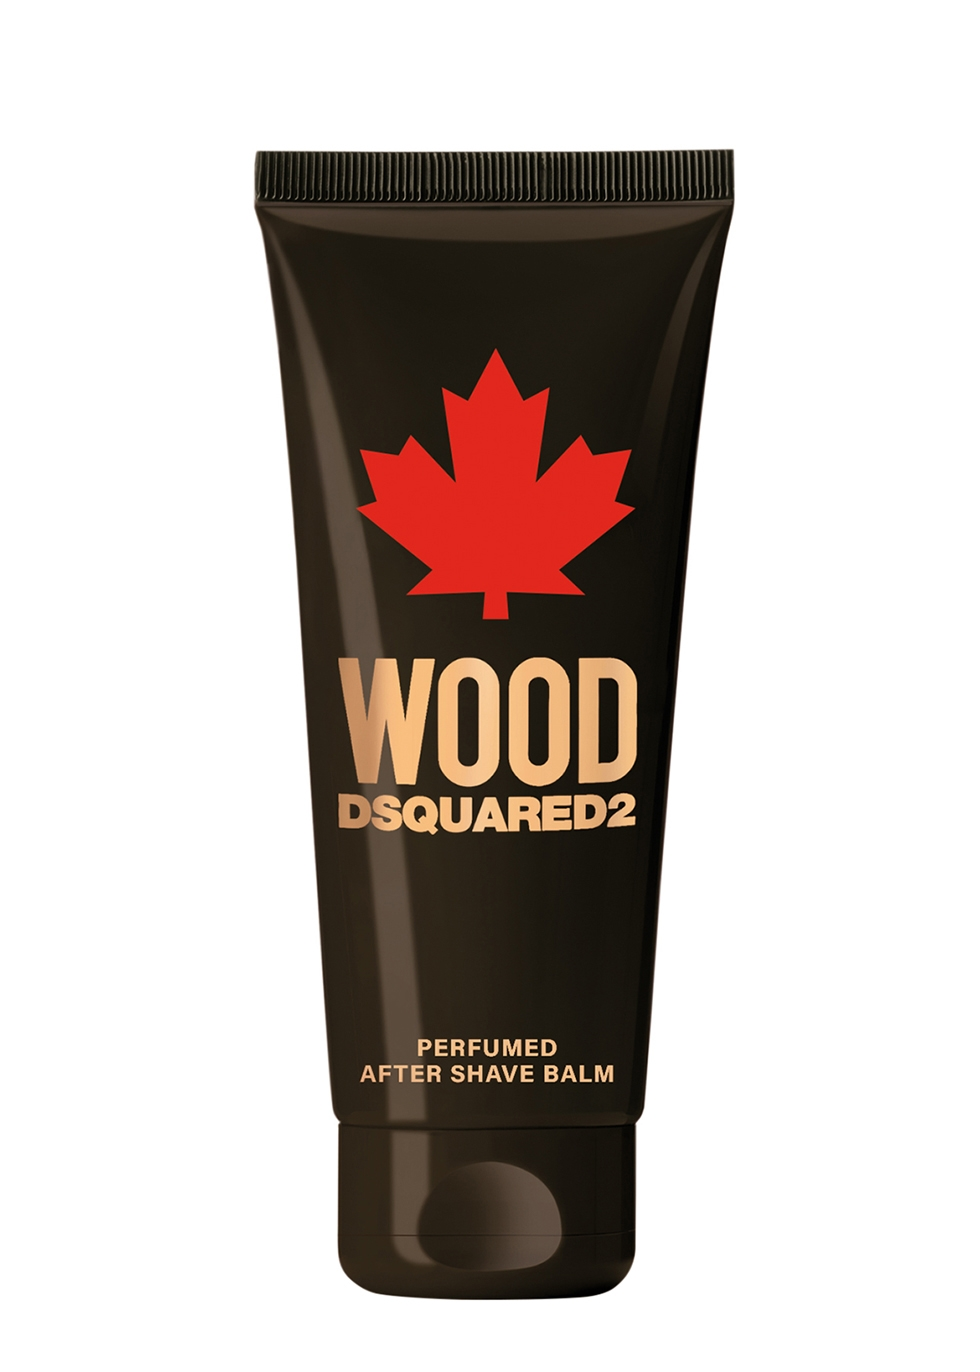 Wood Pour Homme Aftershave Balm 100ml - Dsquared2